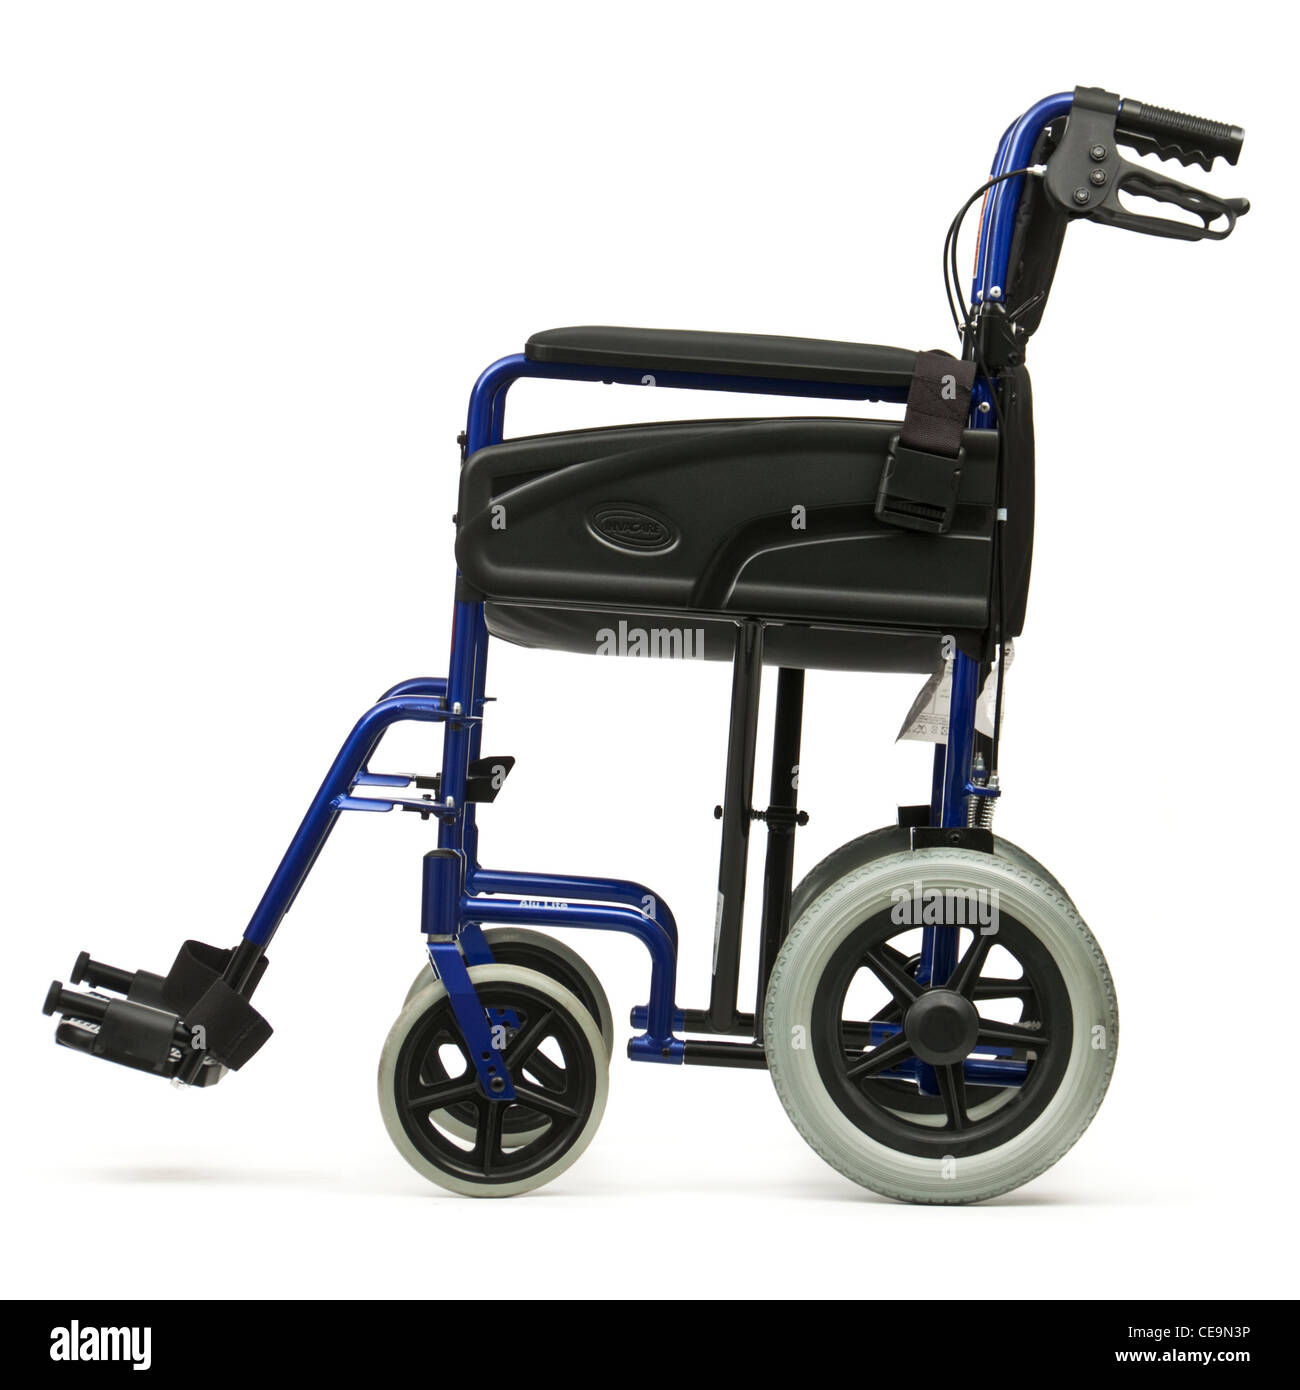 Manual transit wheelchair by Invacare - Stock Image